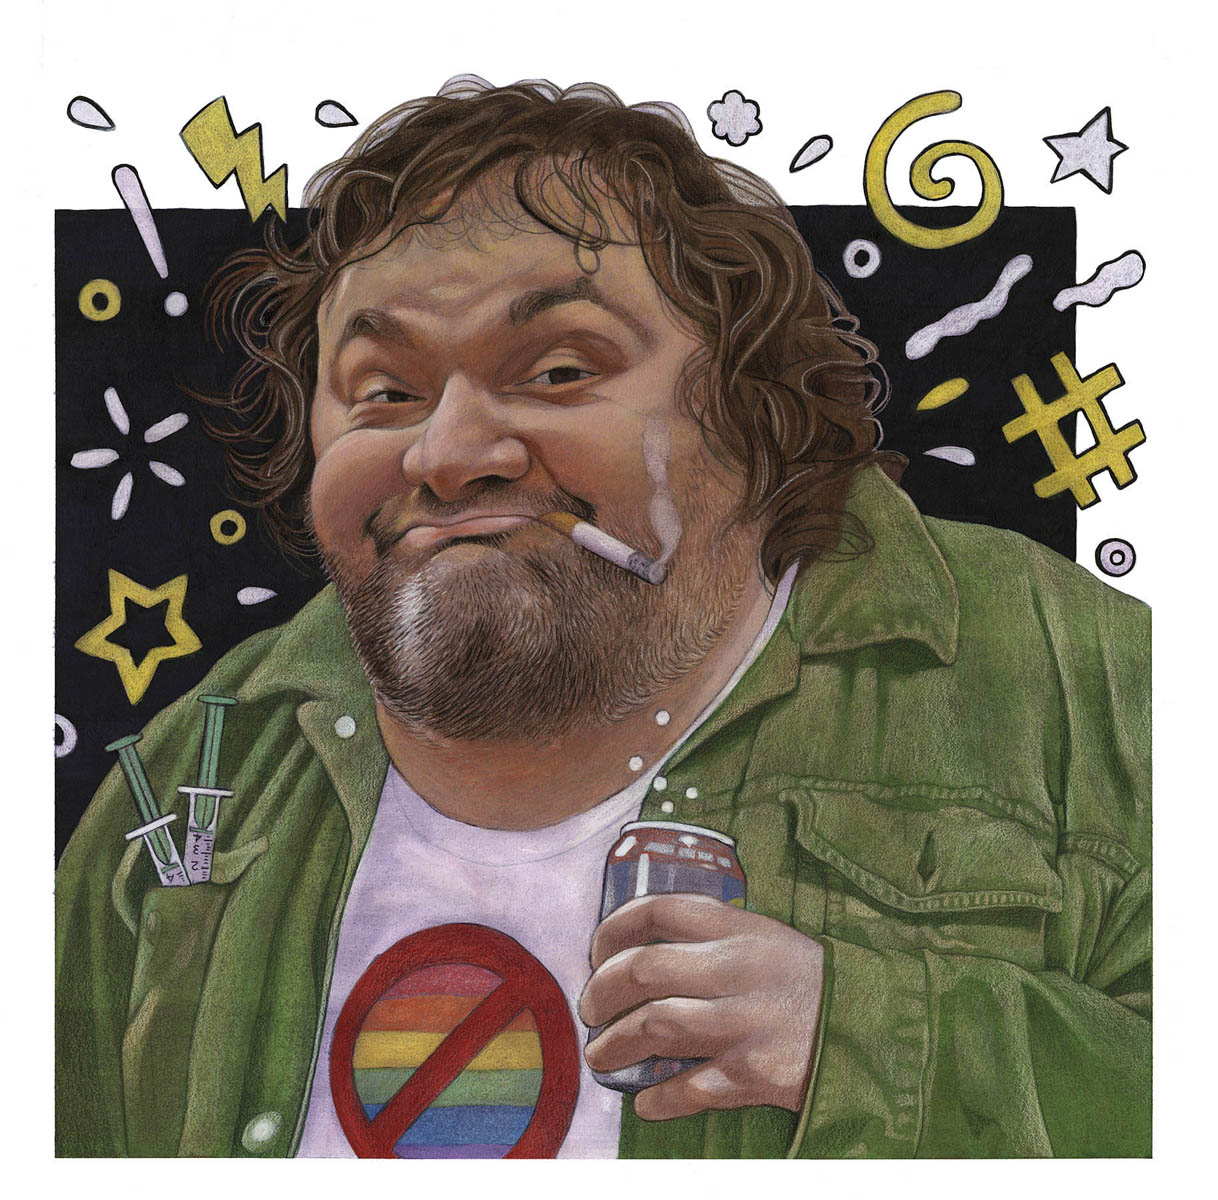 Artie Lange New York Chatting With Artie Lange Jerry Miller Illustration